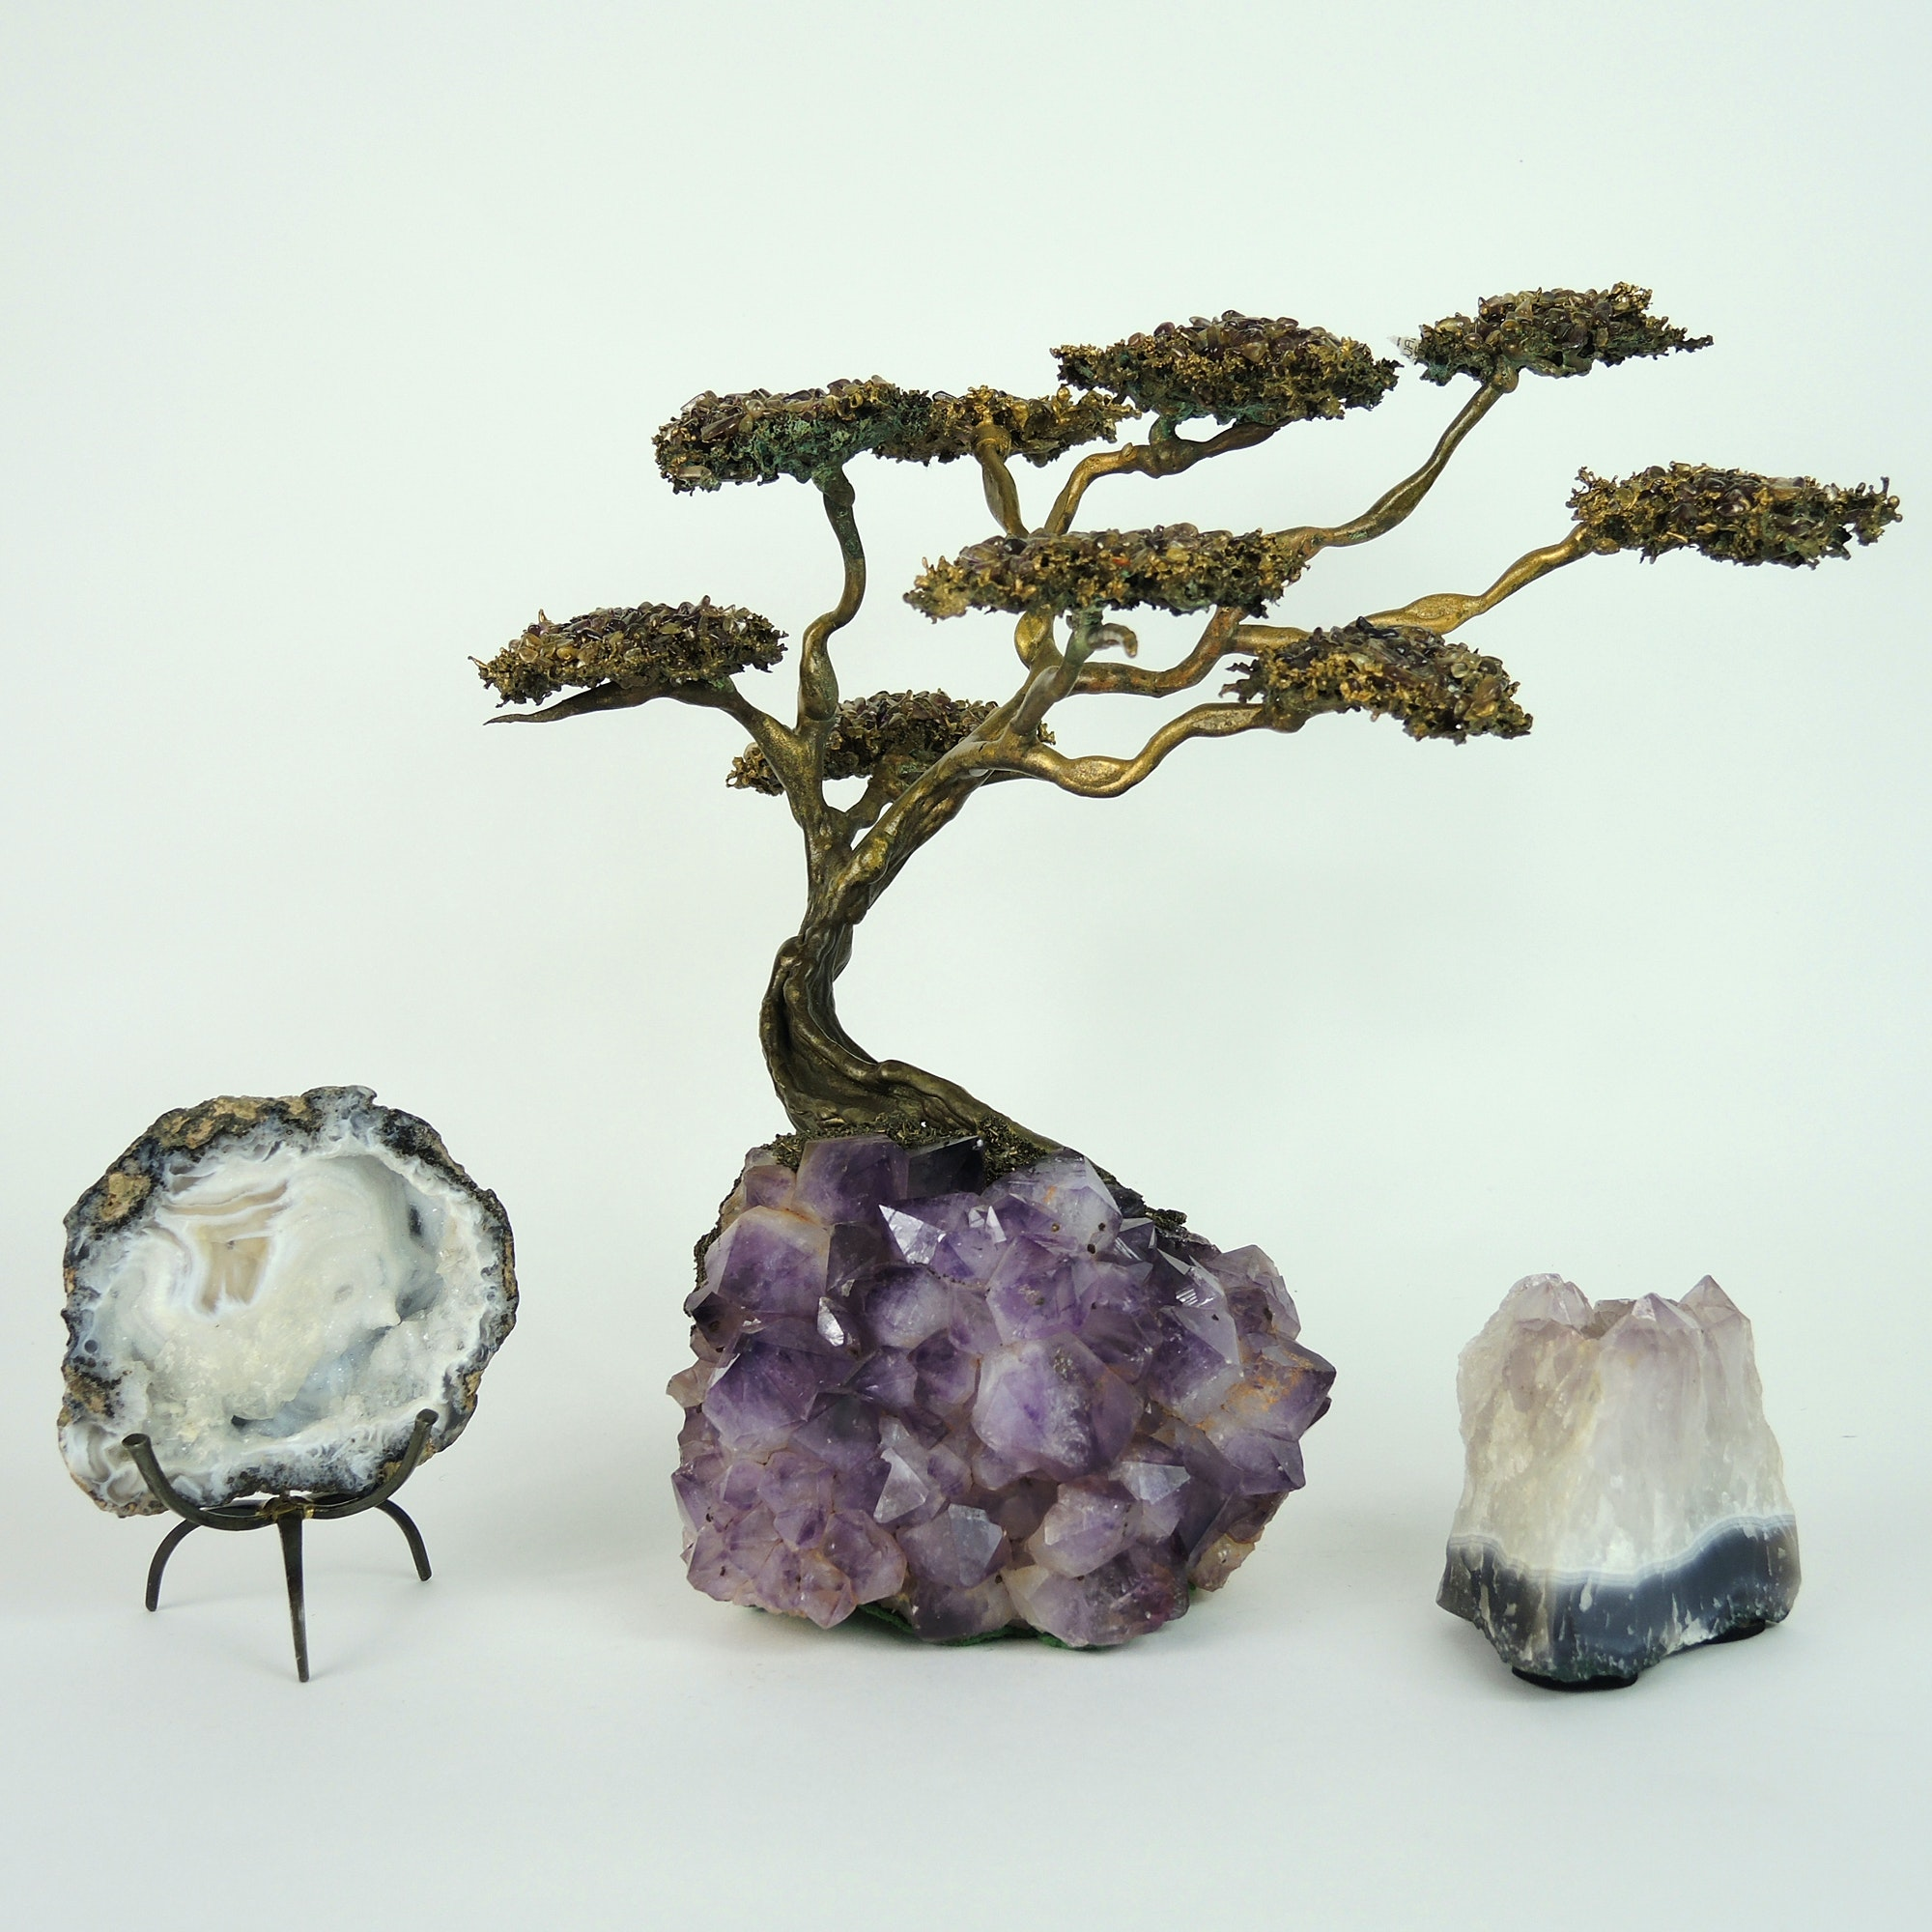 Amethyst Bonsai Tree and More